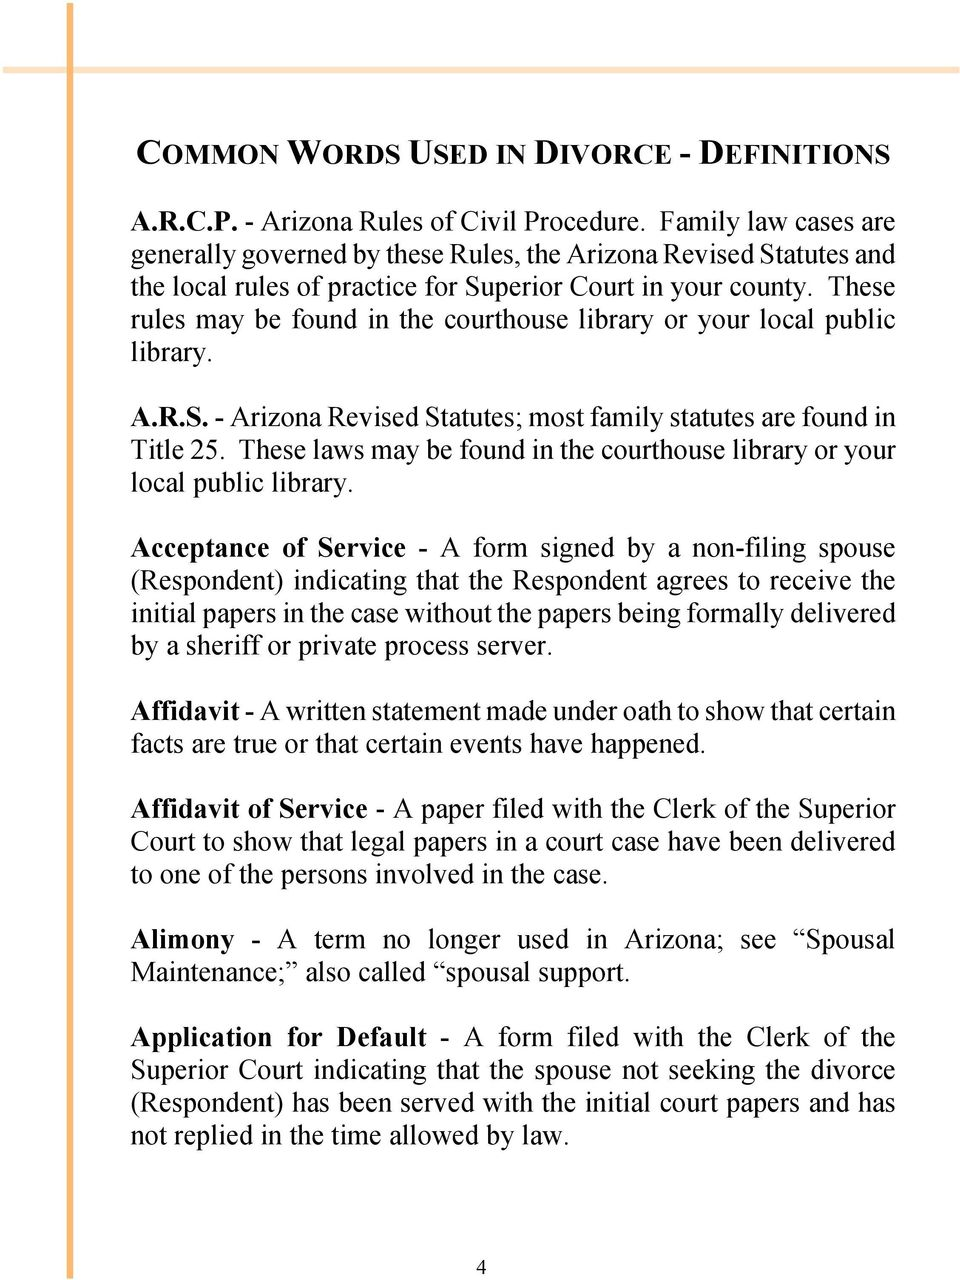 These rules may be found in the courthouse library or your local public library. A.R.S. - Arizona Revised Statutes; most family statutes are found in Title 25.